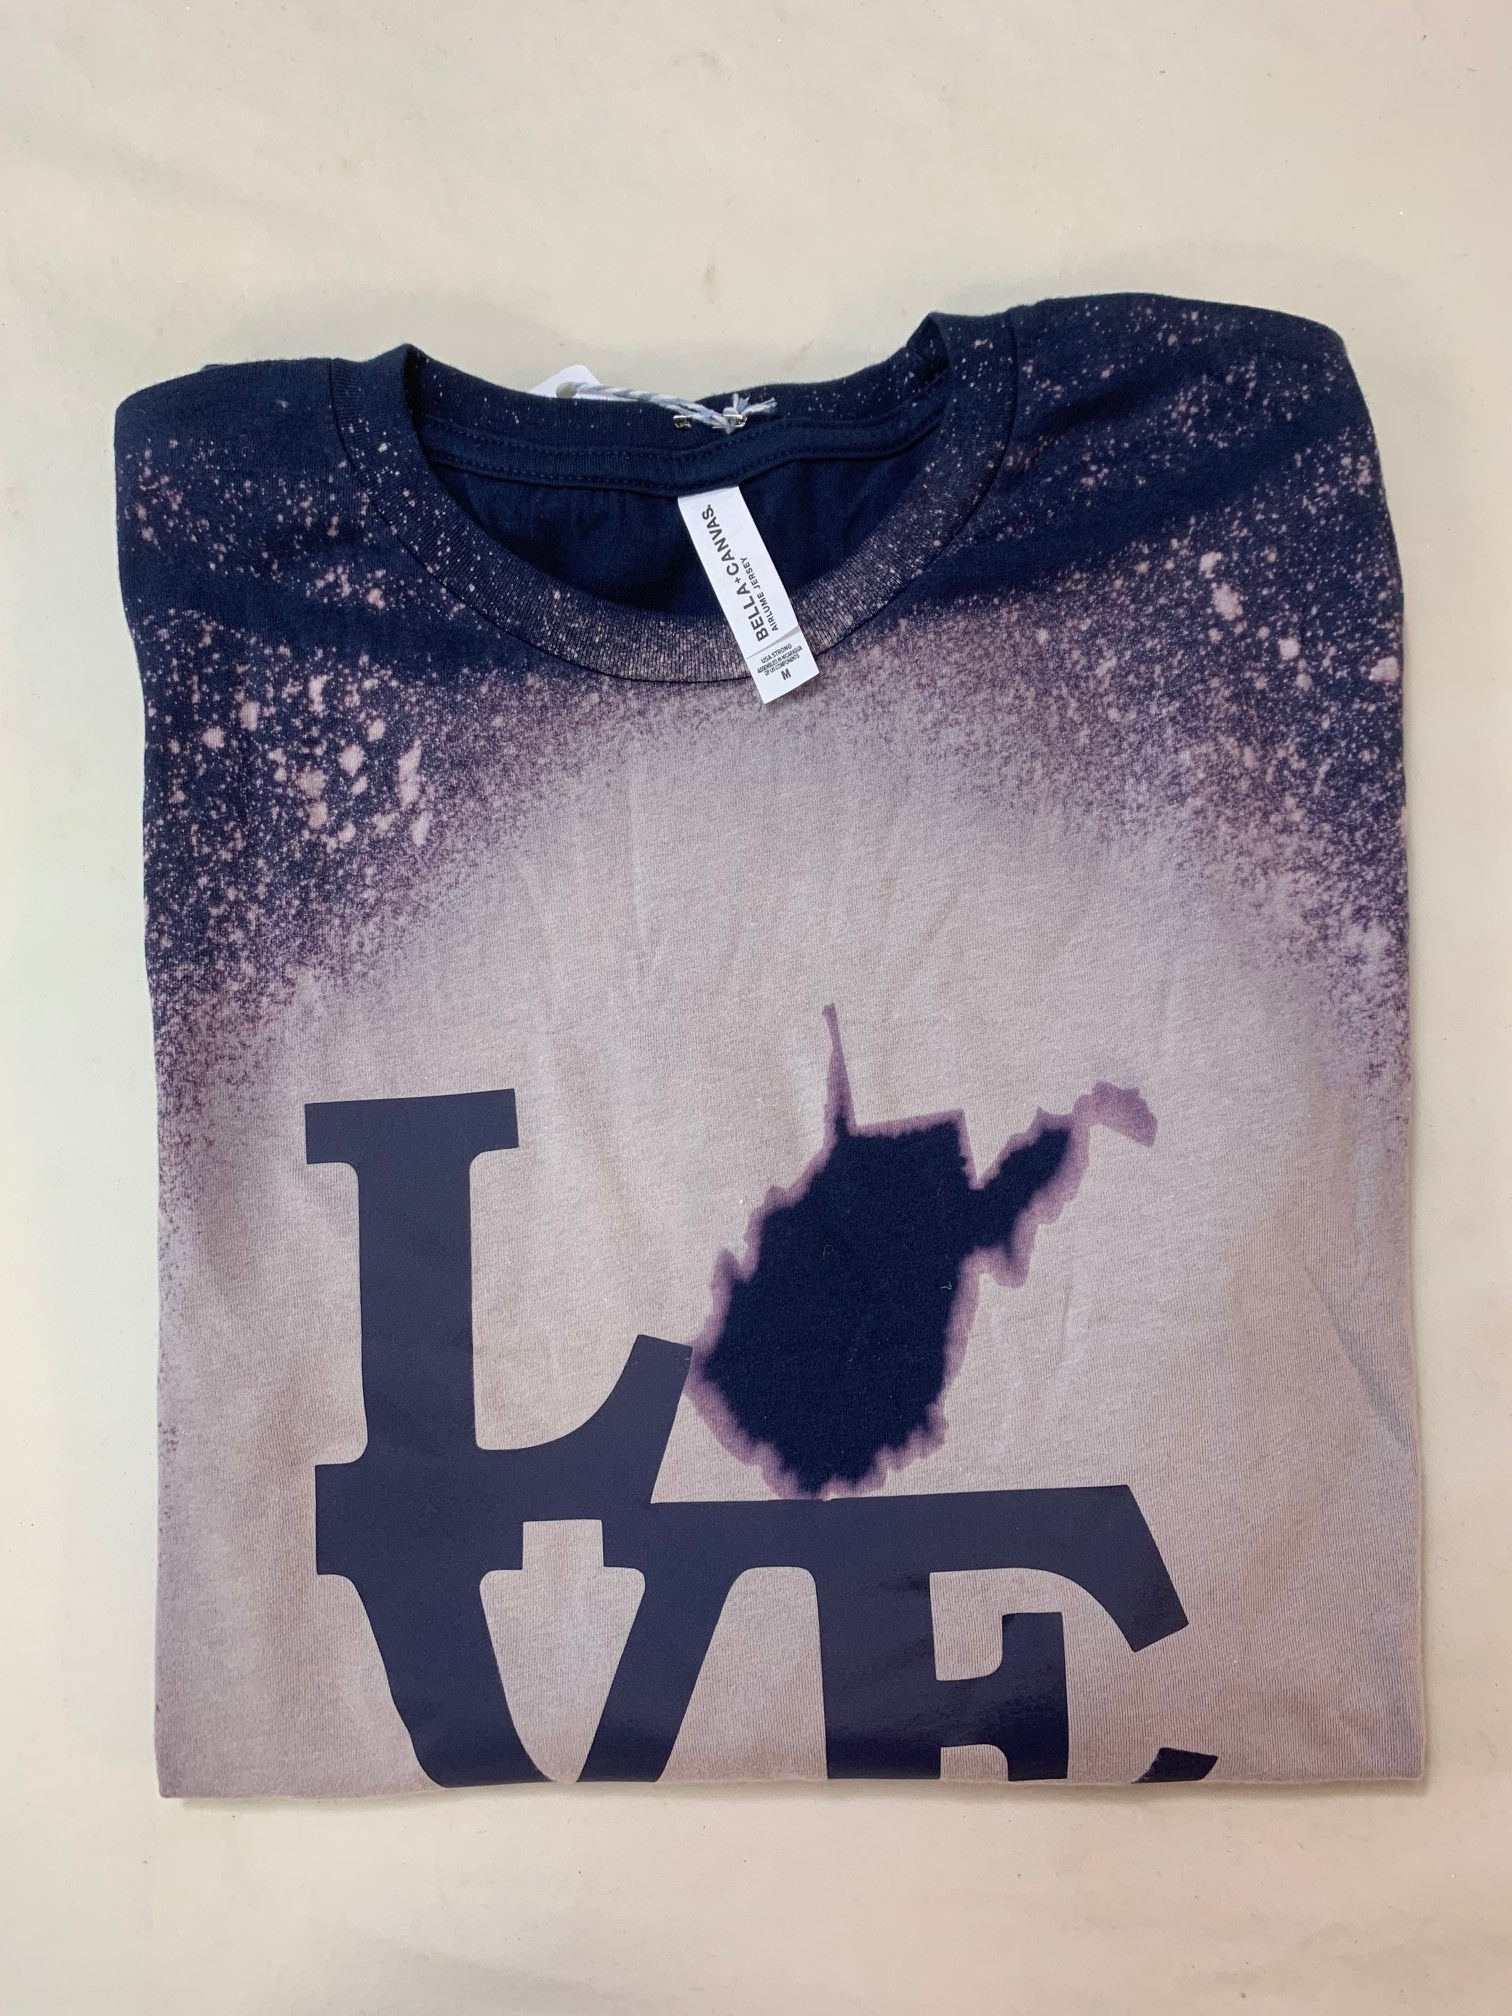 Positive-a-tees Positive-a-tees L(state)VE, Navy Bleach LS Lg